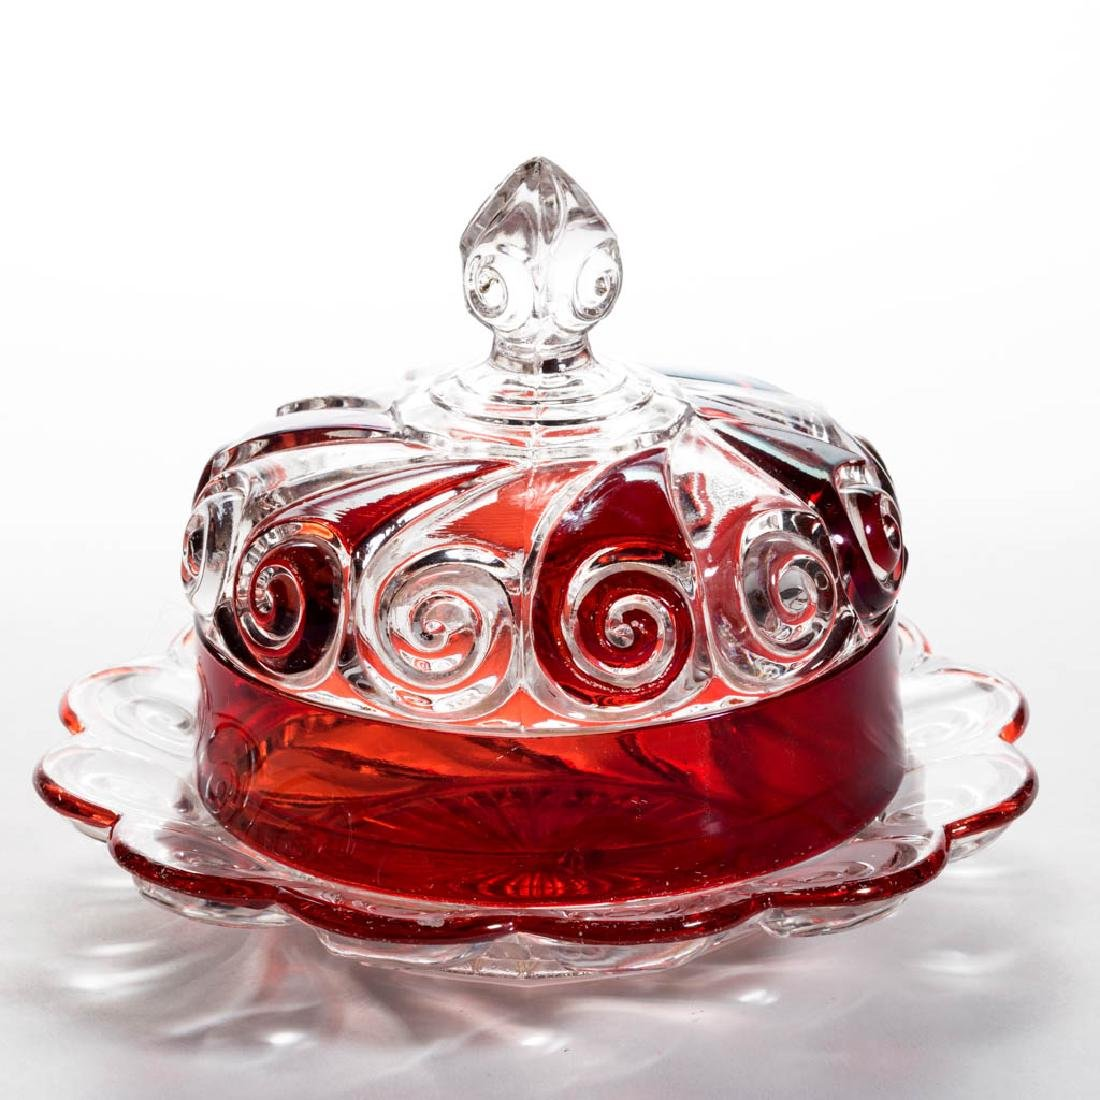 DUNCAN NO. 360 / SNAIL - RUBY-STAINED COVERED BUTTER